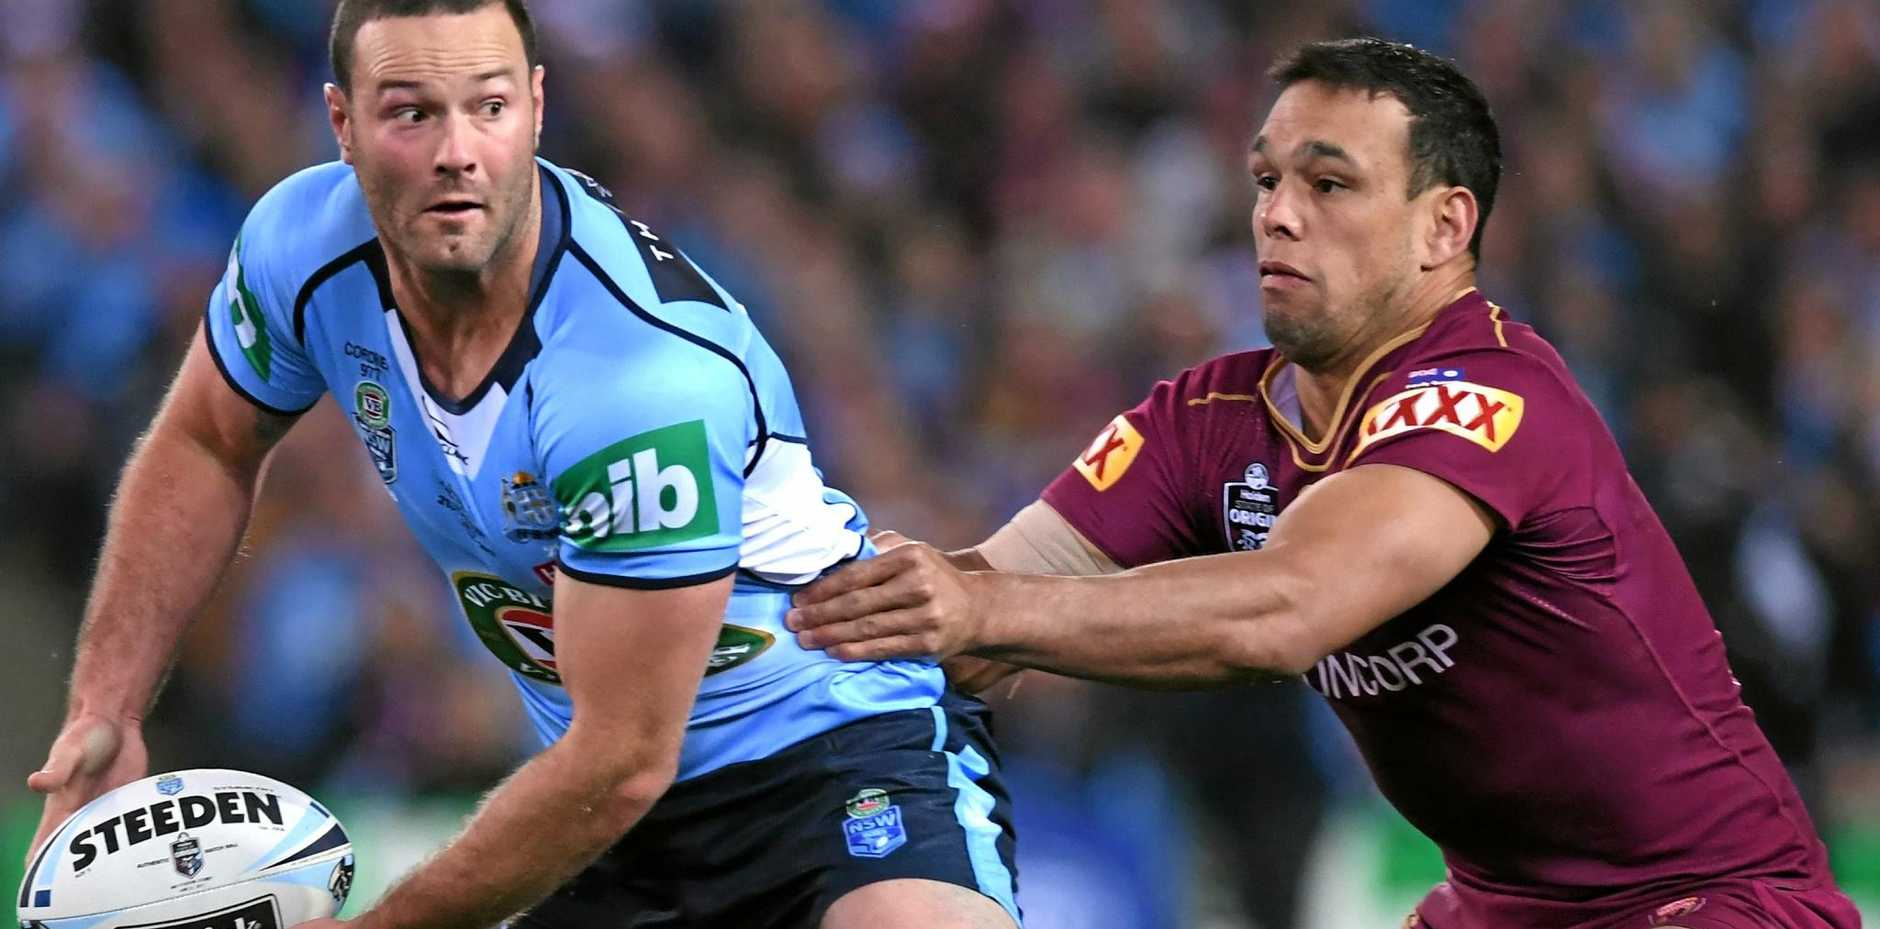 INJURY CONCERN: New South Wales captain Boyd Cordner is battling to overcome a calf injury ahead of Game 3.